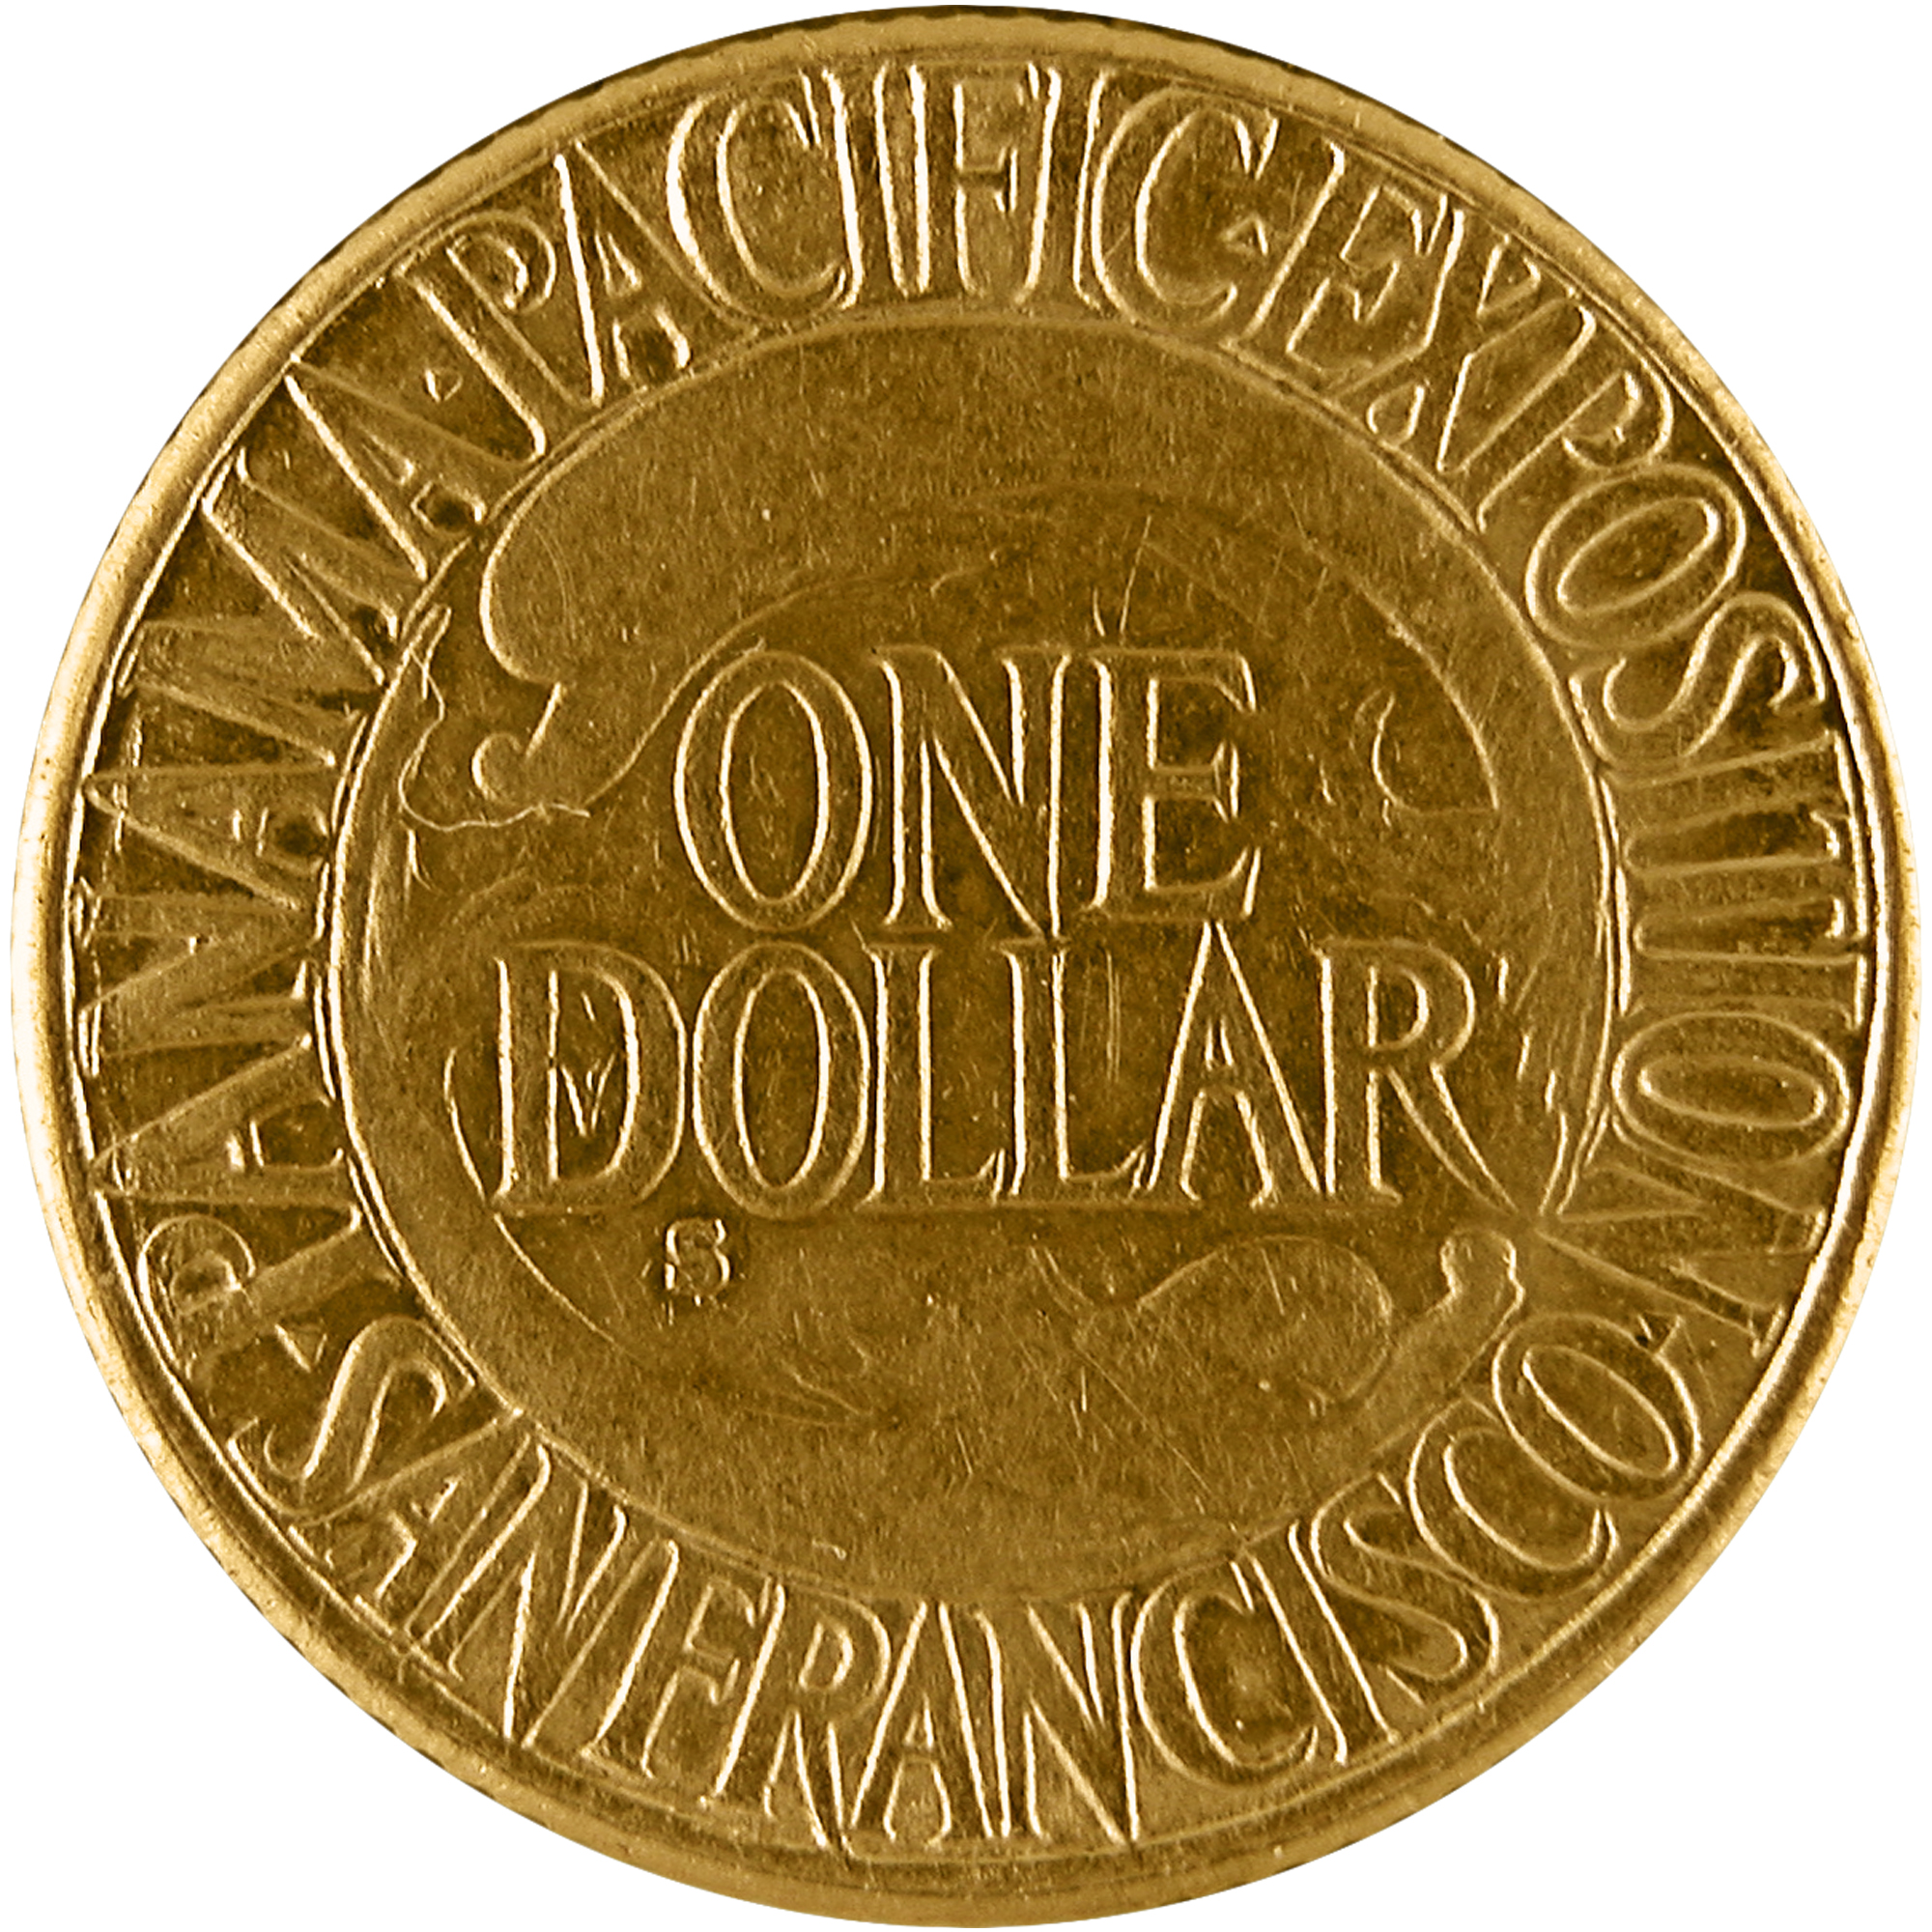 1915 Panama Pacific Exposition Commemorative Gold One Dollar Coin Reverse